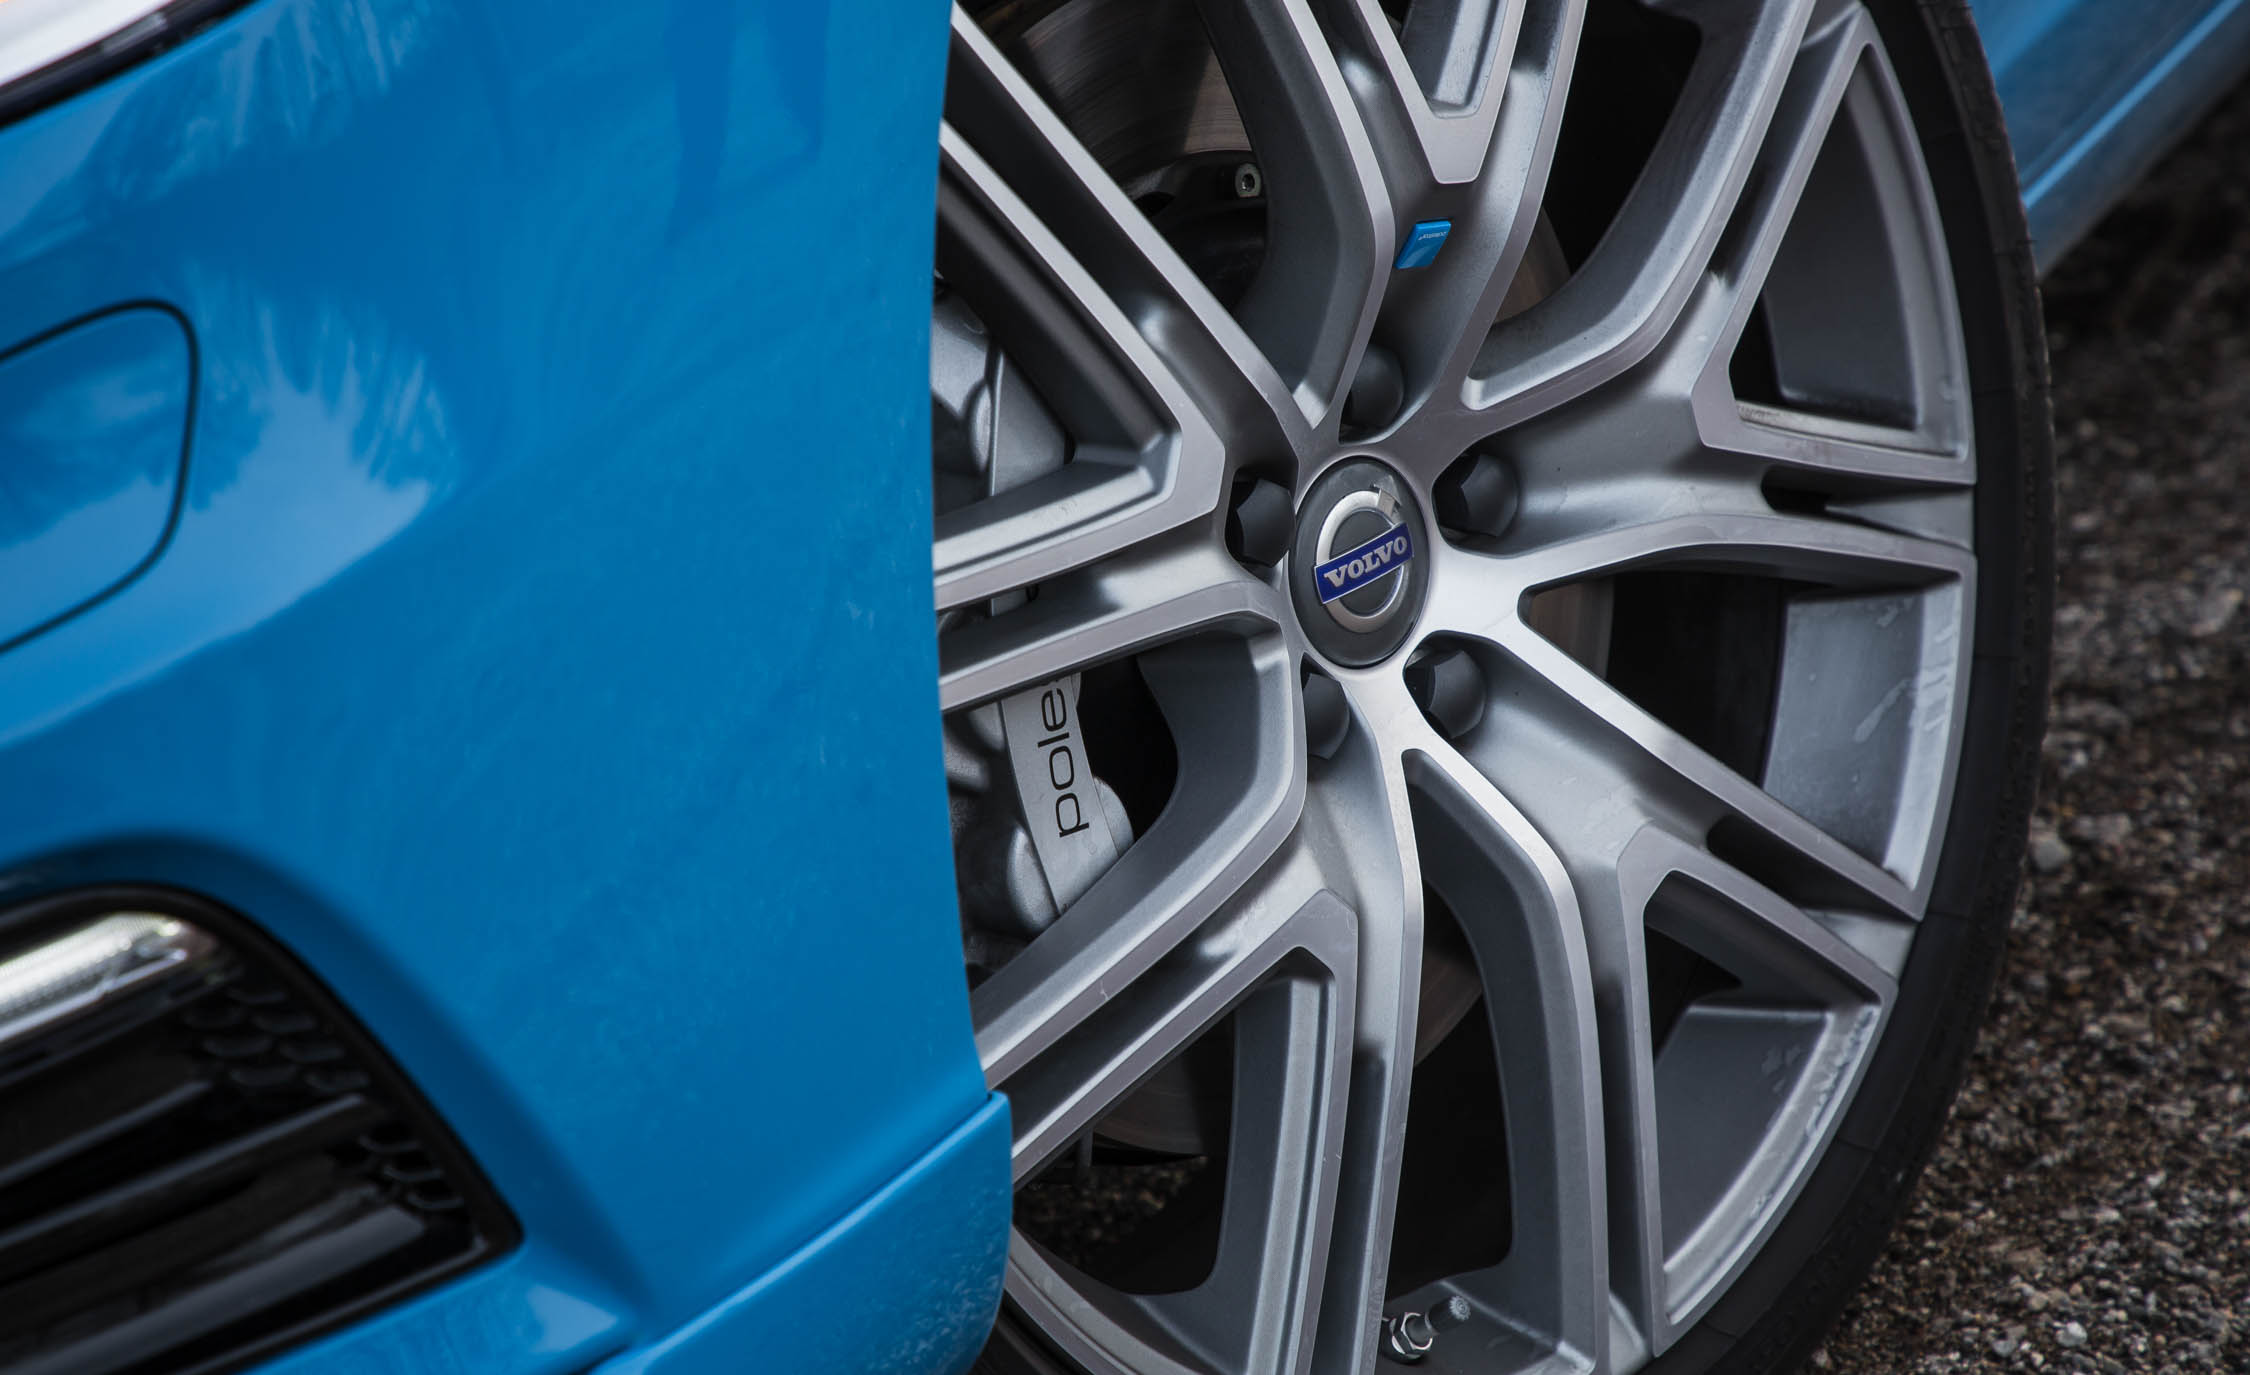 2017 Volvo V60 Polestar Exterior View Wheel Trim (View 20 of 53)